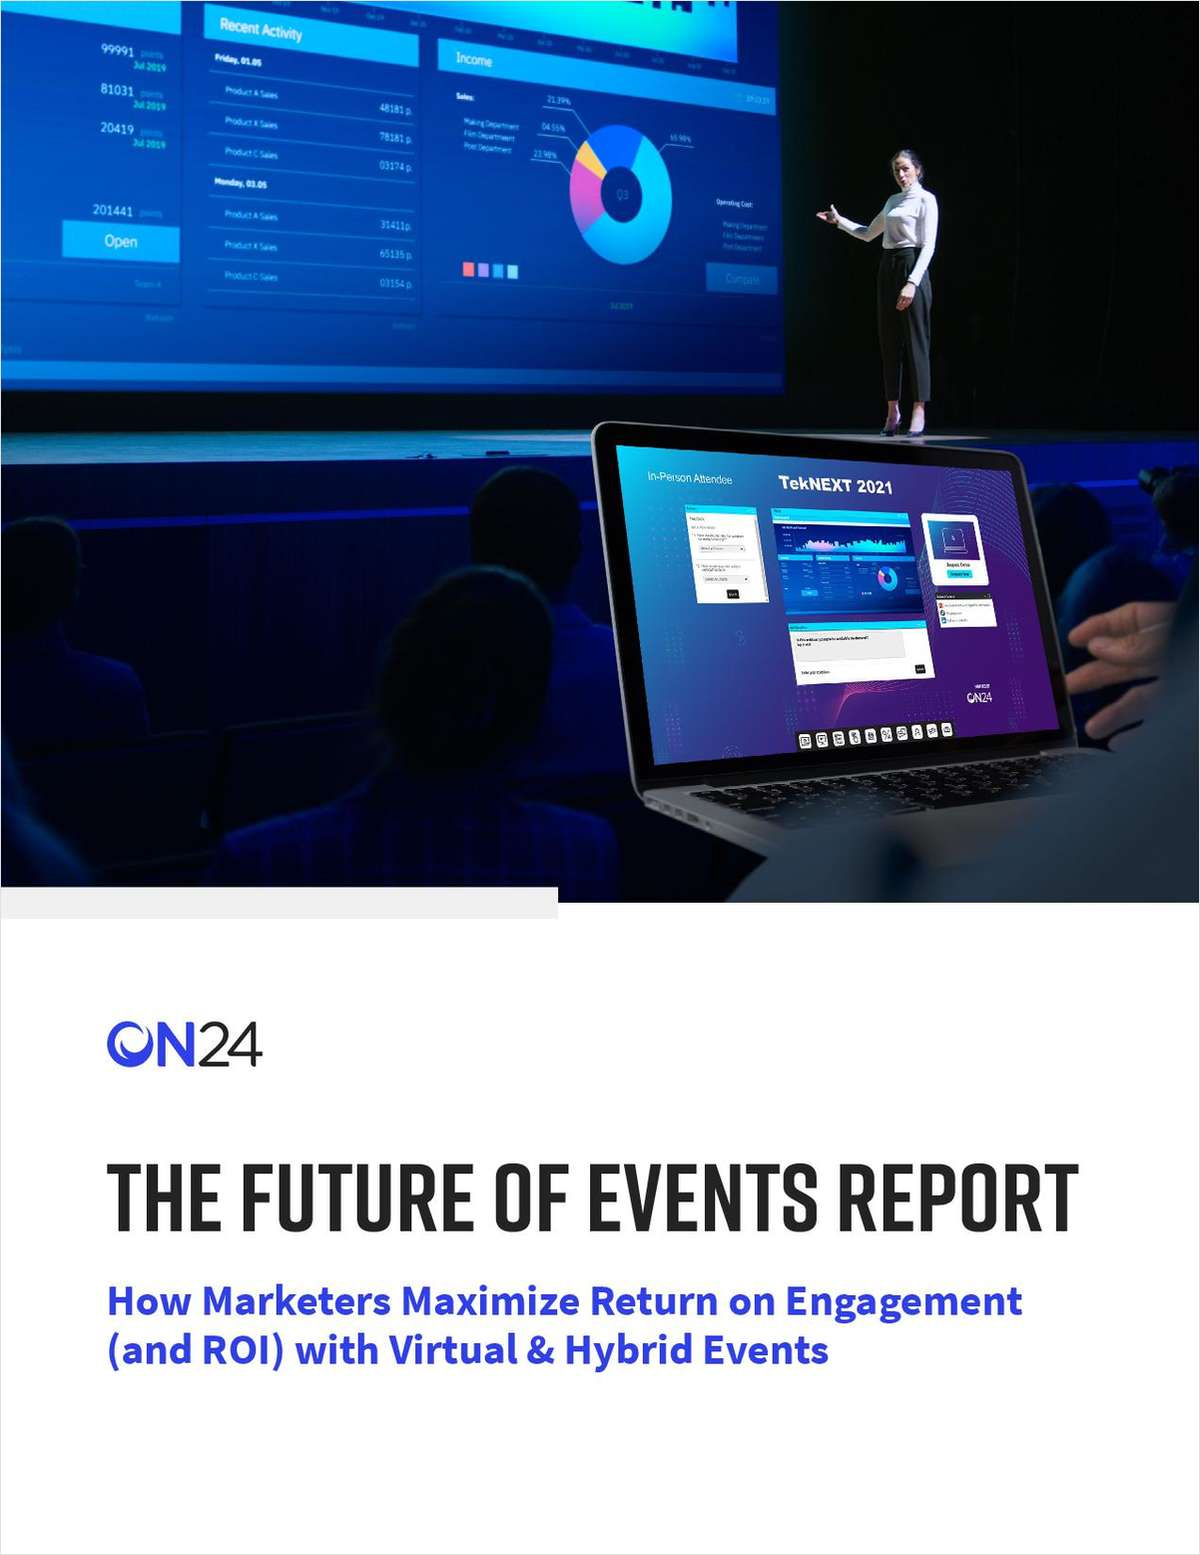 ON24 The Future of Events Report